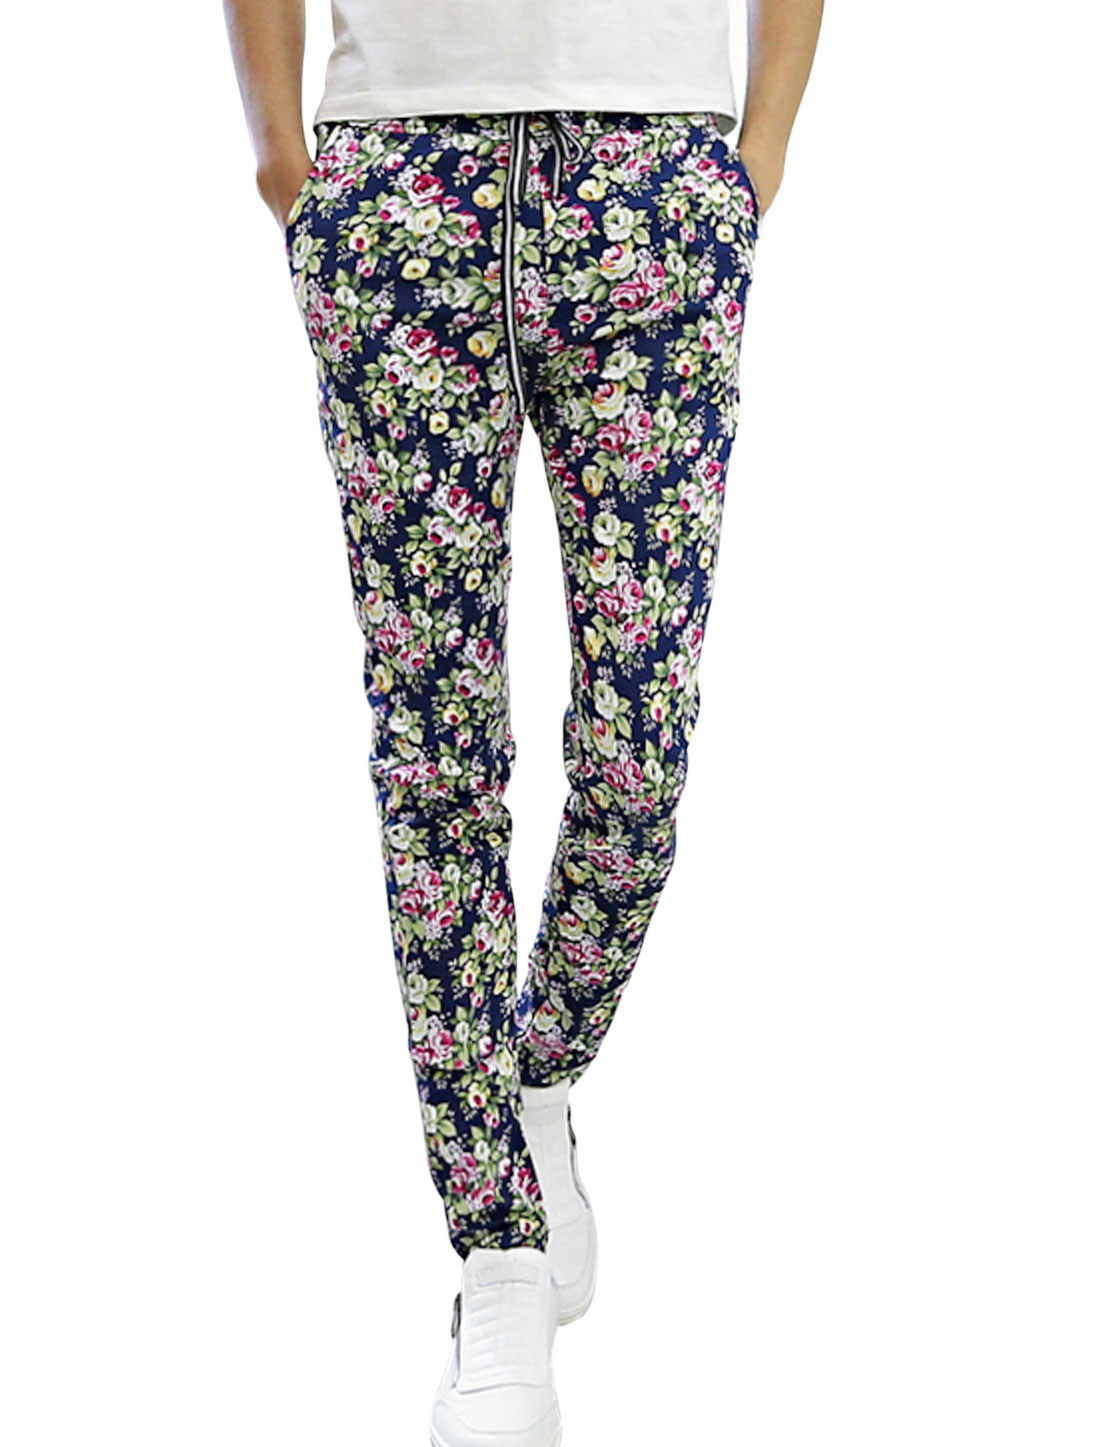 Man Navy Blue Fuchsia Floral Prints Elastic Waist Drawstring Tapered Pants W28